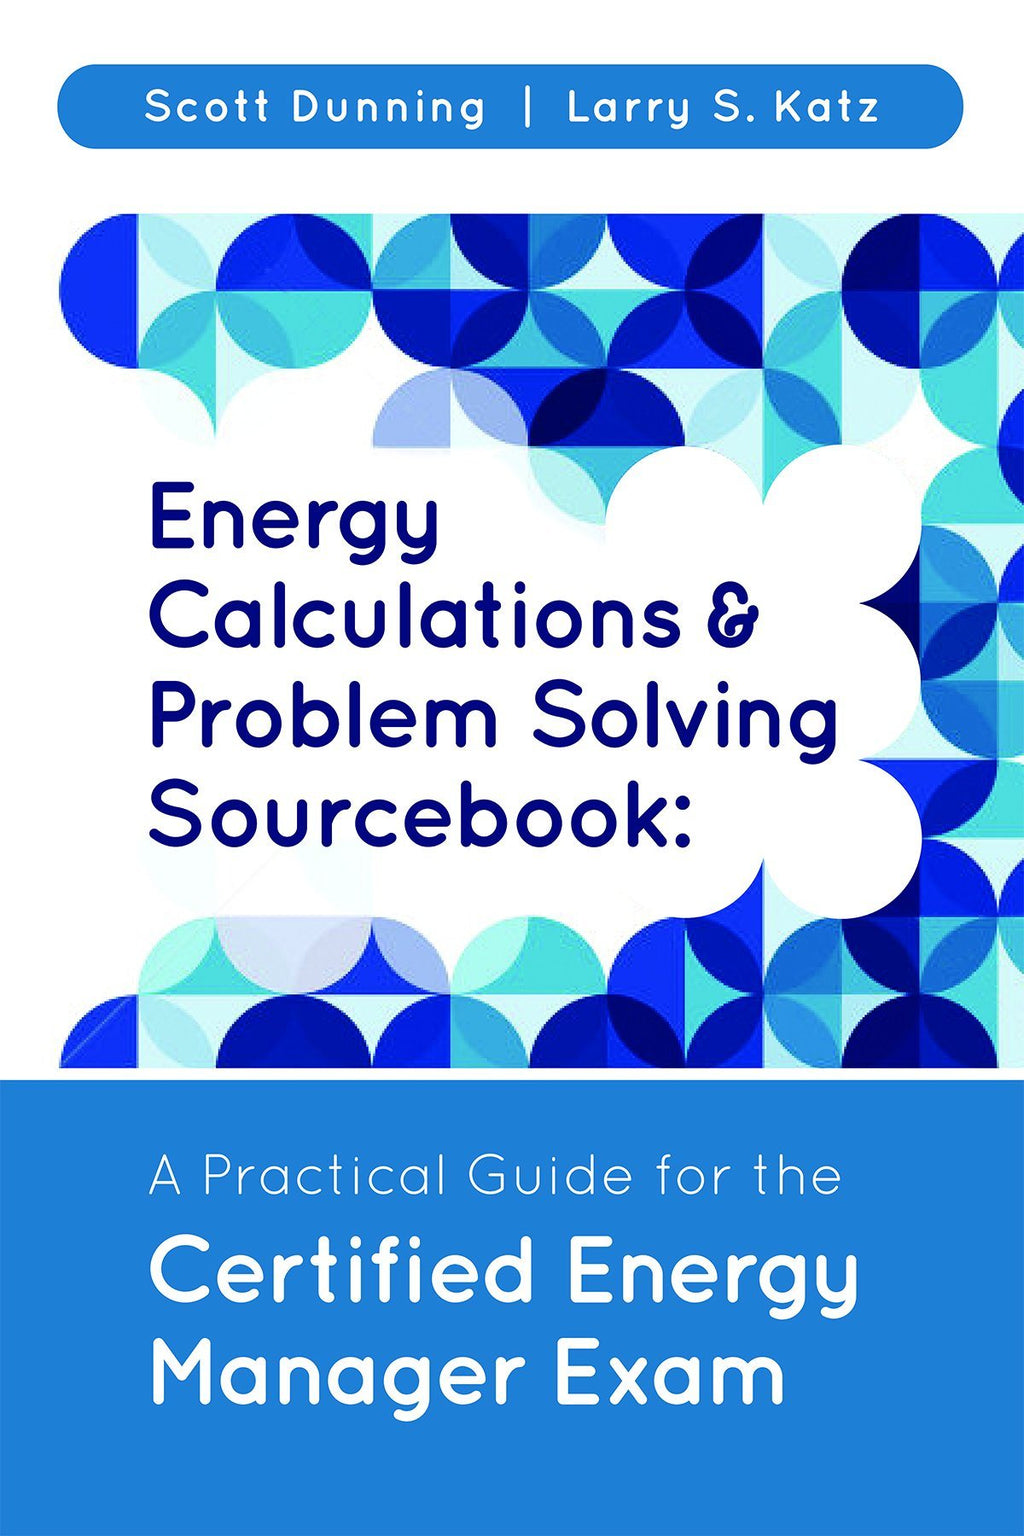 Energy Calculations & Problem Solving Sourcebook: A Practical Guide for the Certified Energy Manager Exam - AEE Programs